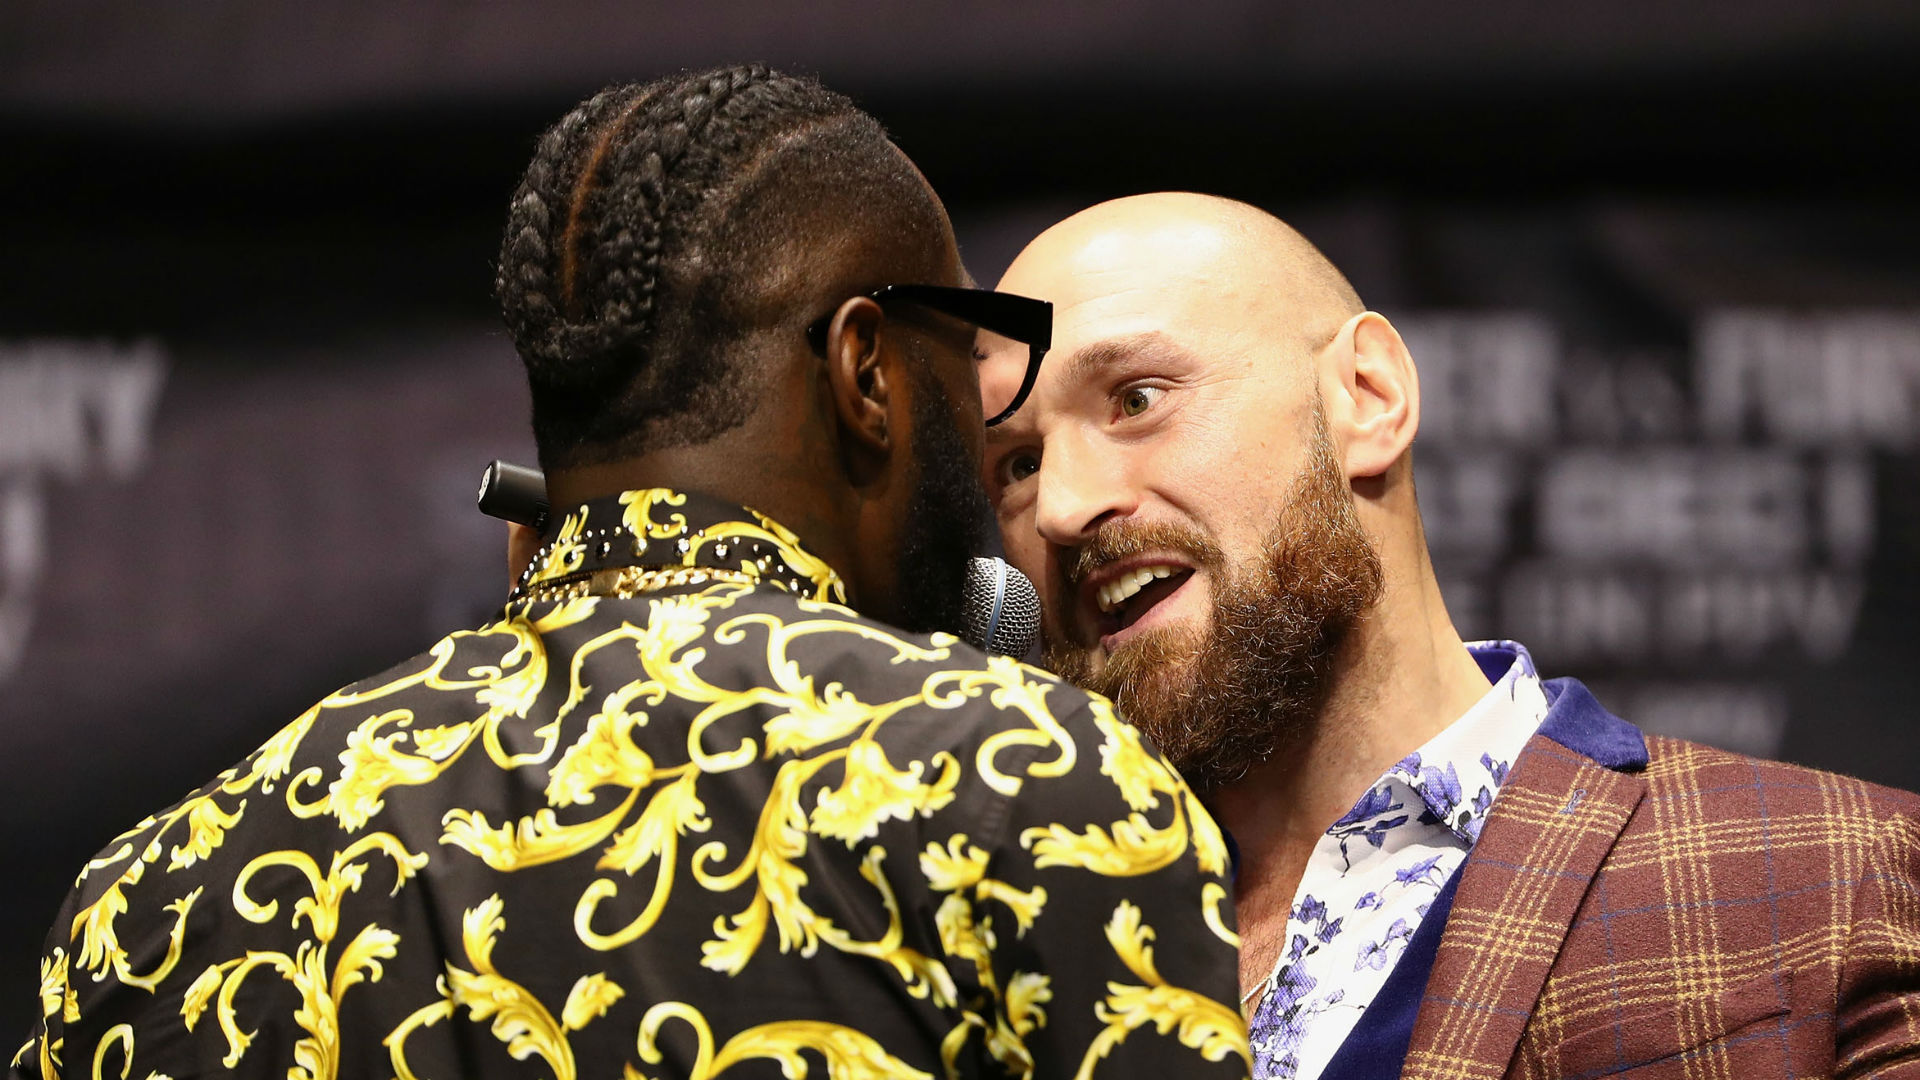 Deontay Wilder And Tyson Fury Nearly Became Physical During Intense Staredown